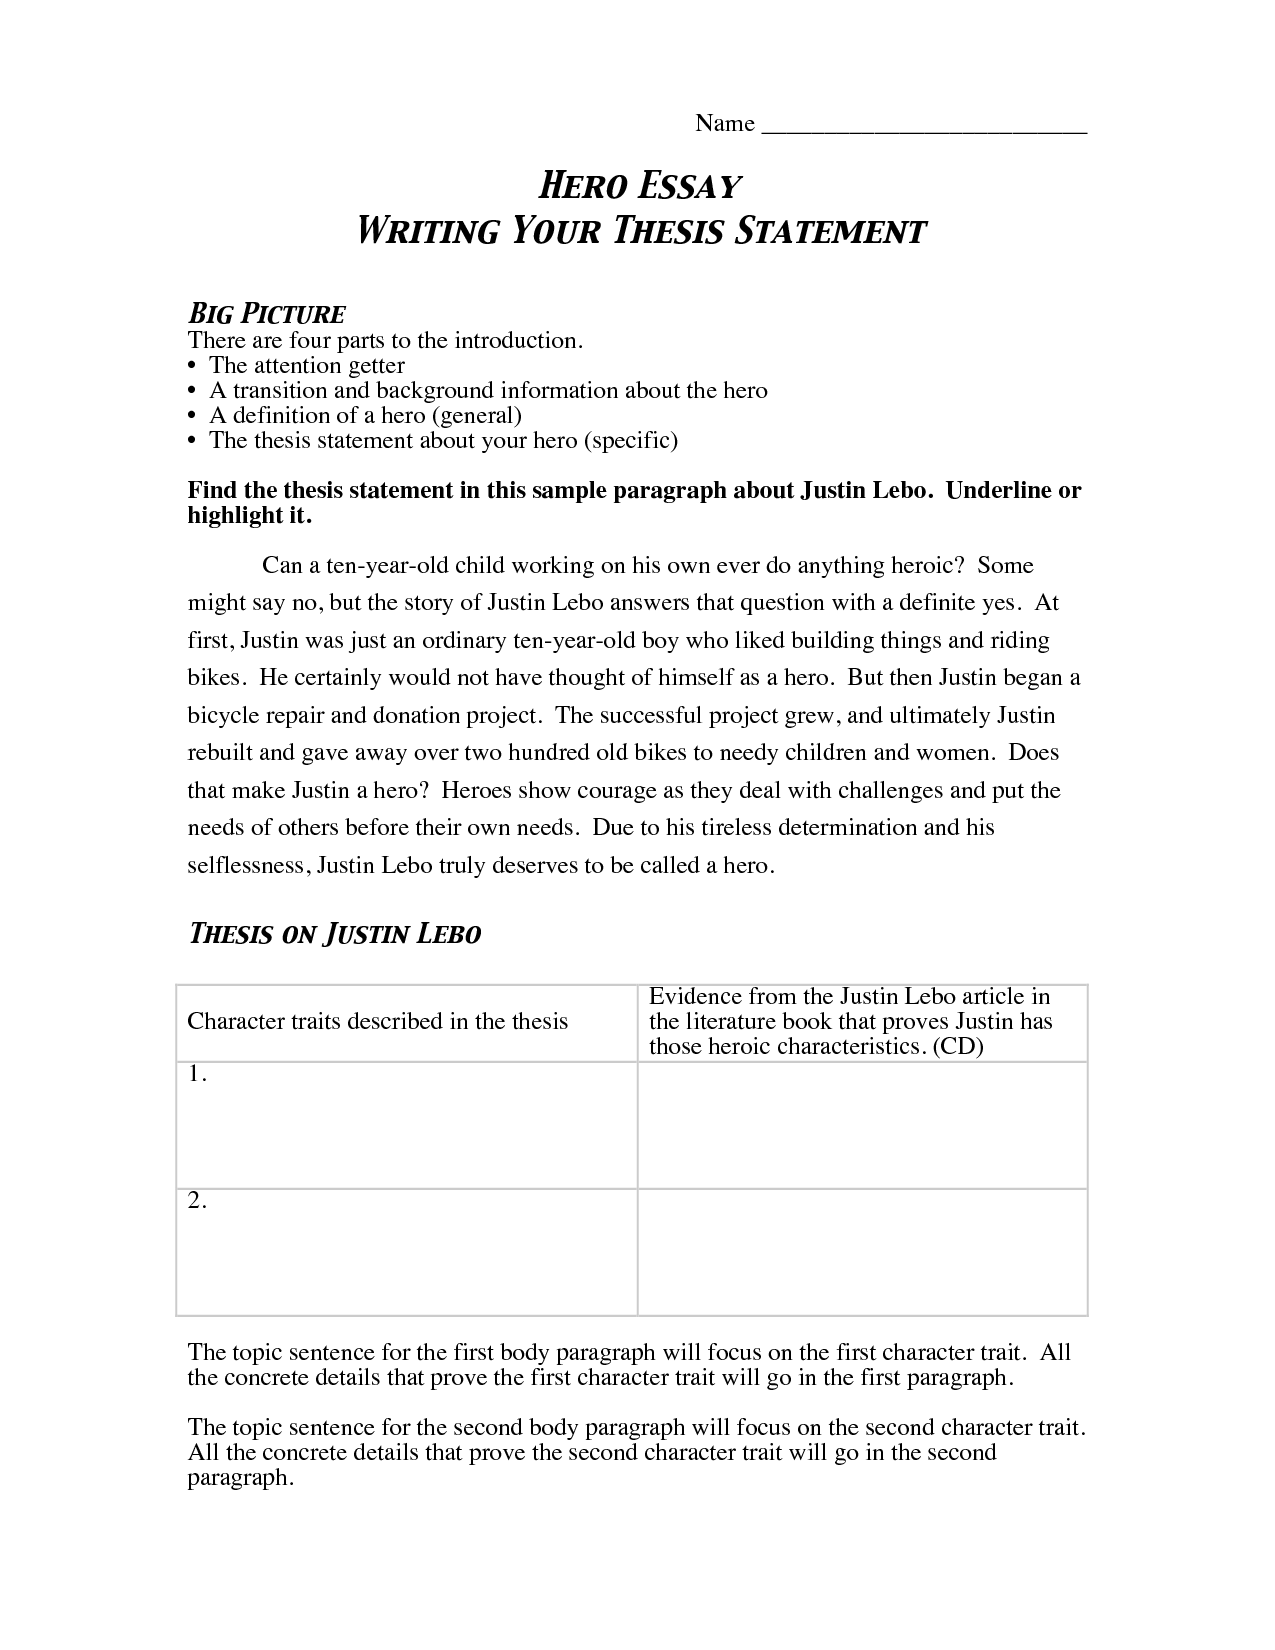 027 Kfvtsngbe0 Essay Example What Is Thesis Statement In Fascinating A An The Purpose Of Argumentative Informative Full